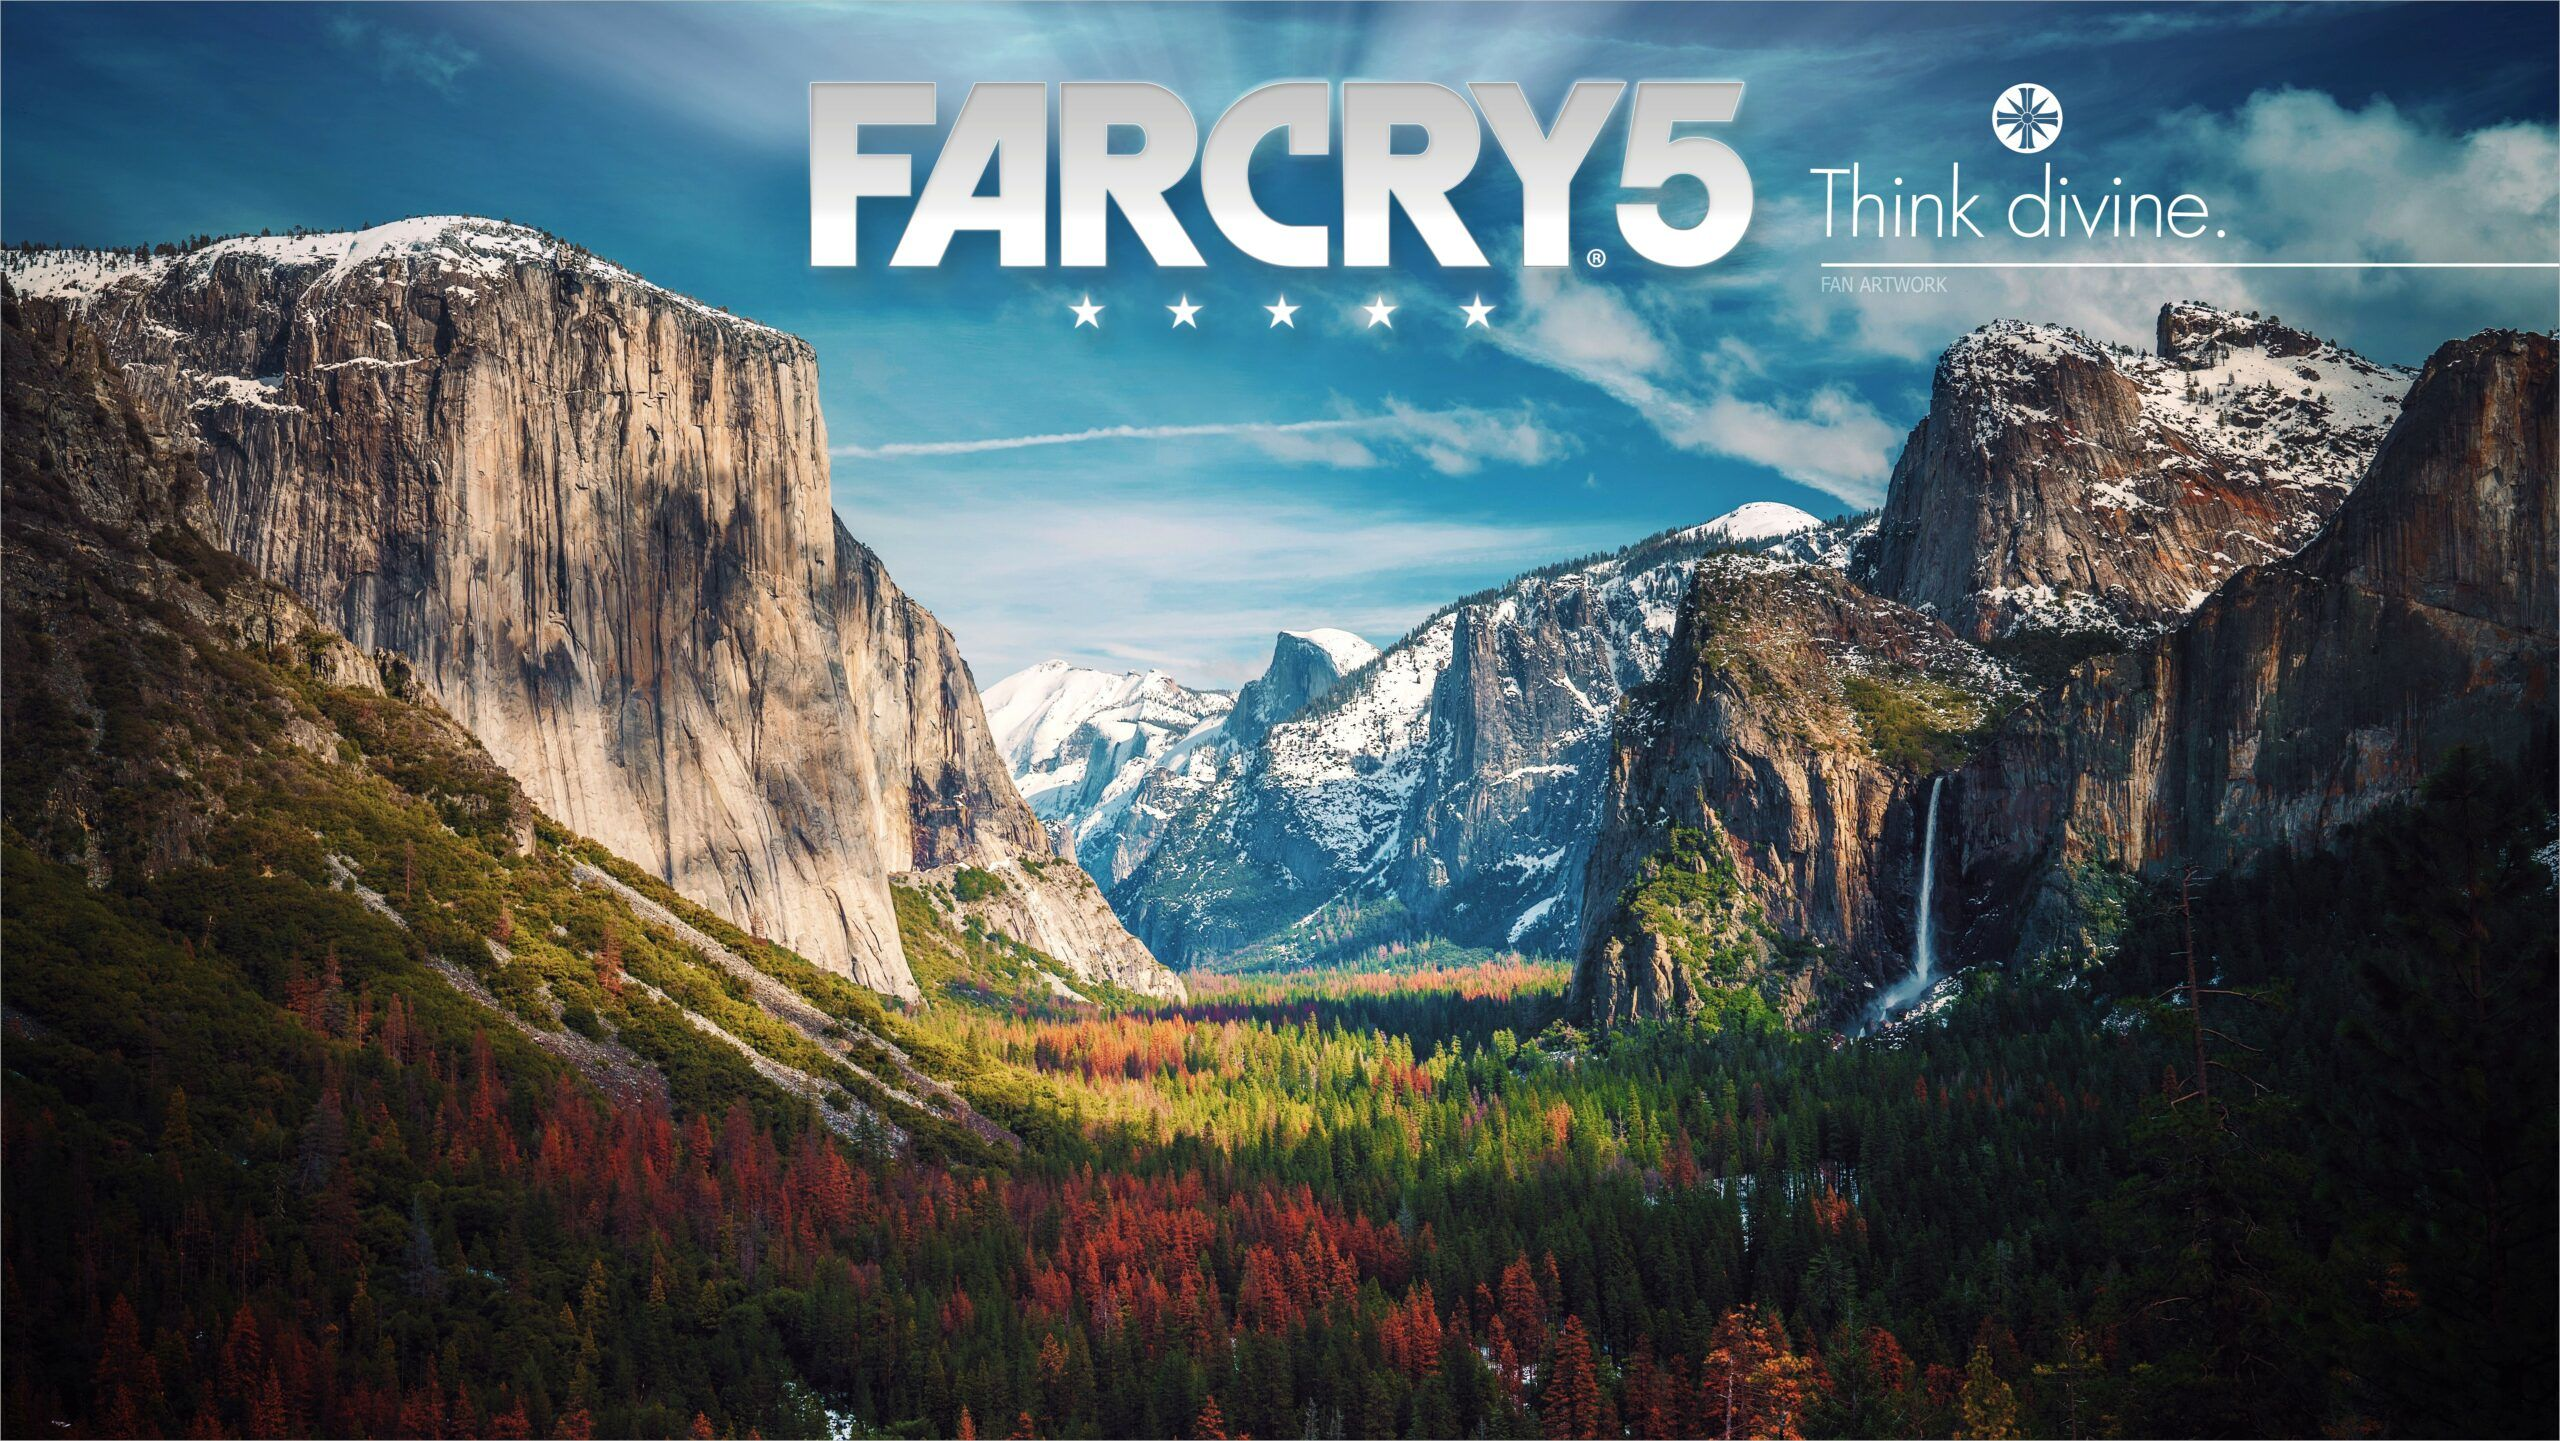 Far Cry 4k Wallpapers In 2020 Digital Wallpaper Background Images Desktop Background Images